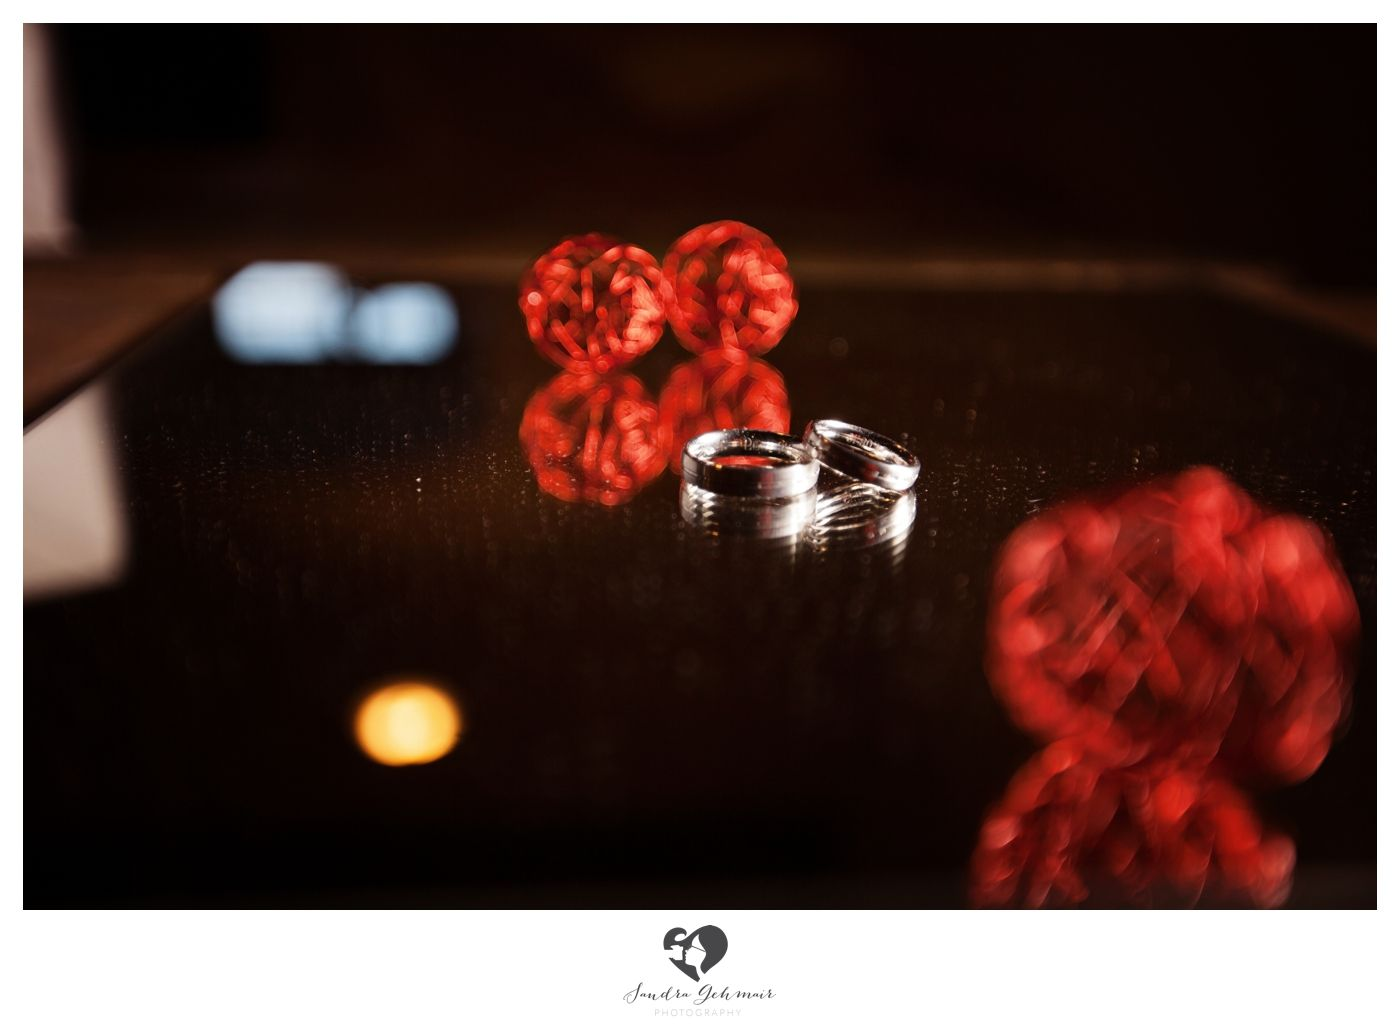 #ring #weddingring #wedding #hochzeit #groom #bride #braut #braeutigam #geschenk #present love #forever #fuerimmer #engagement #engagementring #verlobung #verlobungshooting #silver #gold #weddinghour #reflection #glass #red #table